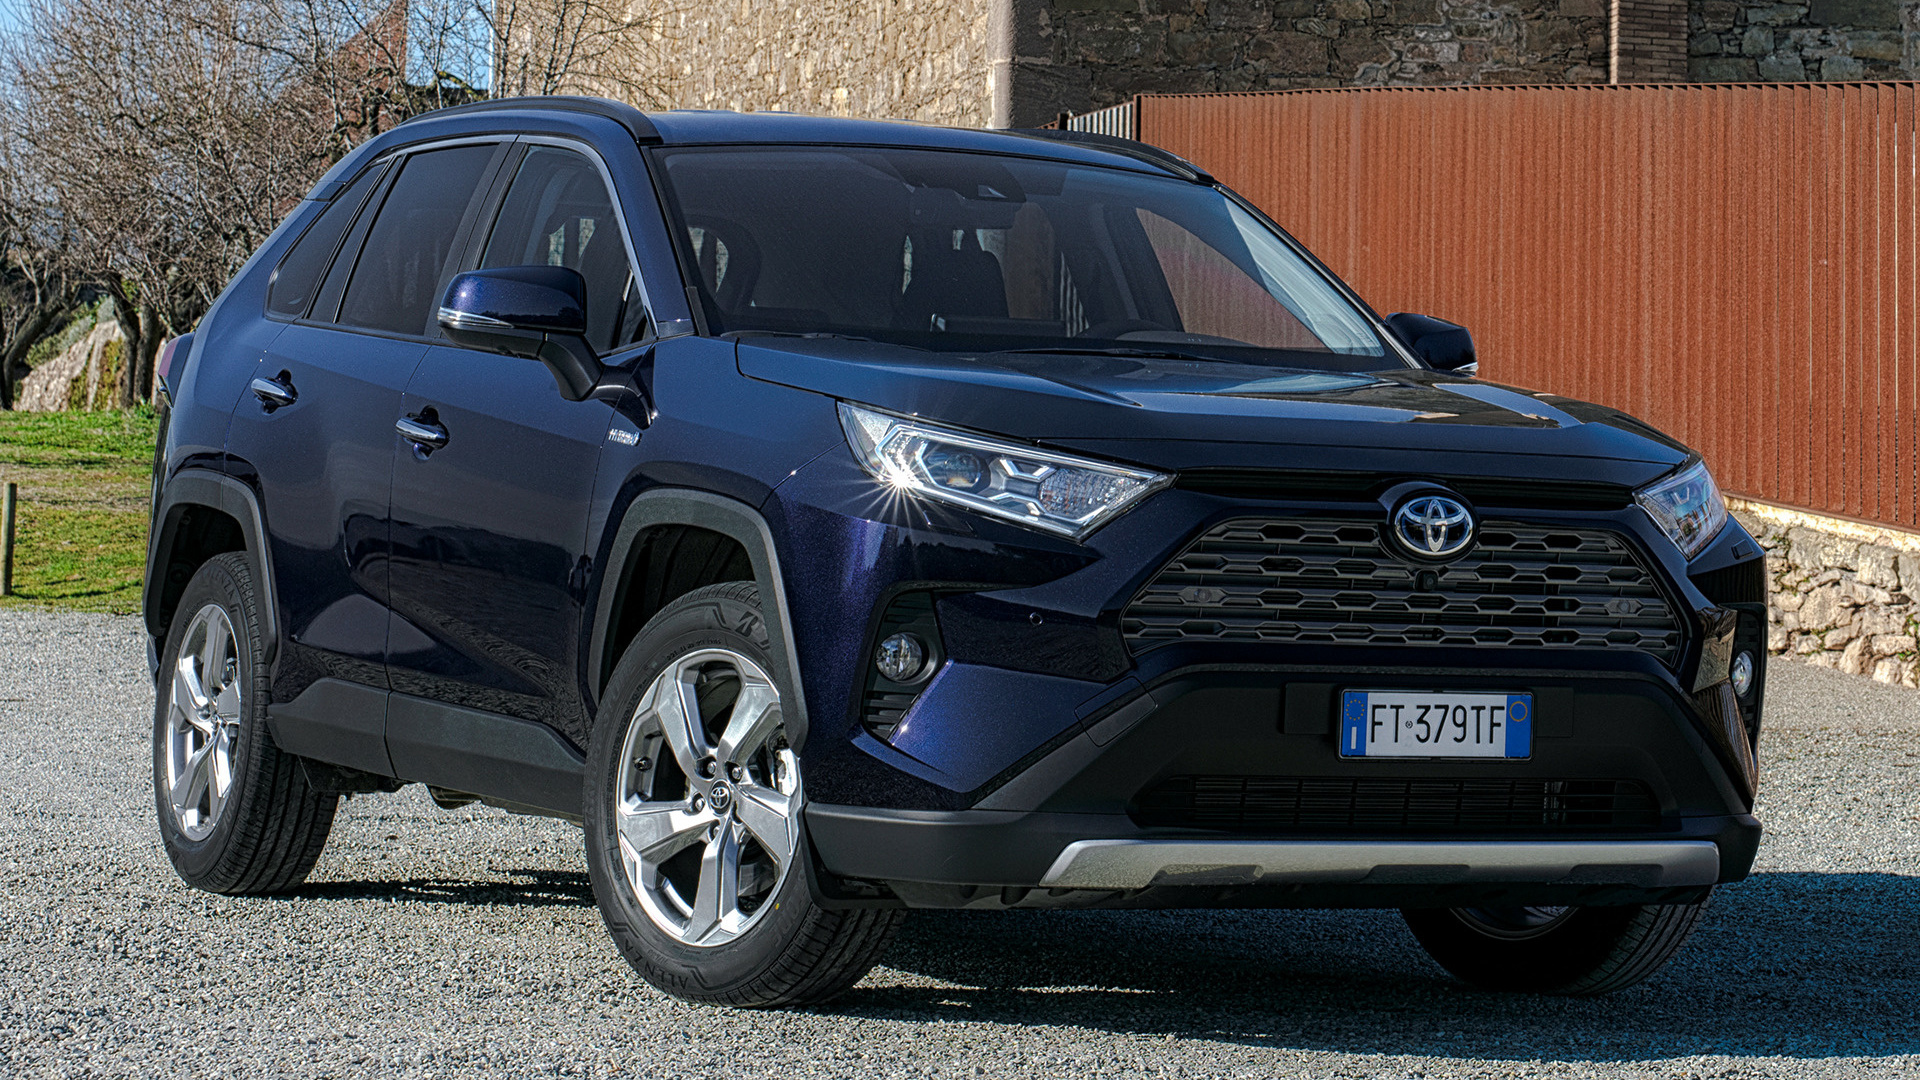 2019 toyota rav4 hybrid wallpapers and hd images car pixel. Black Bedroom Furniture Sets. Home Design Ideas